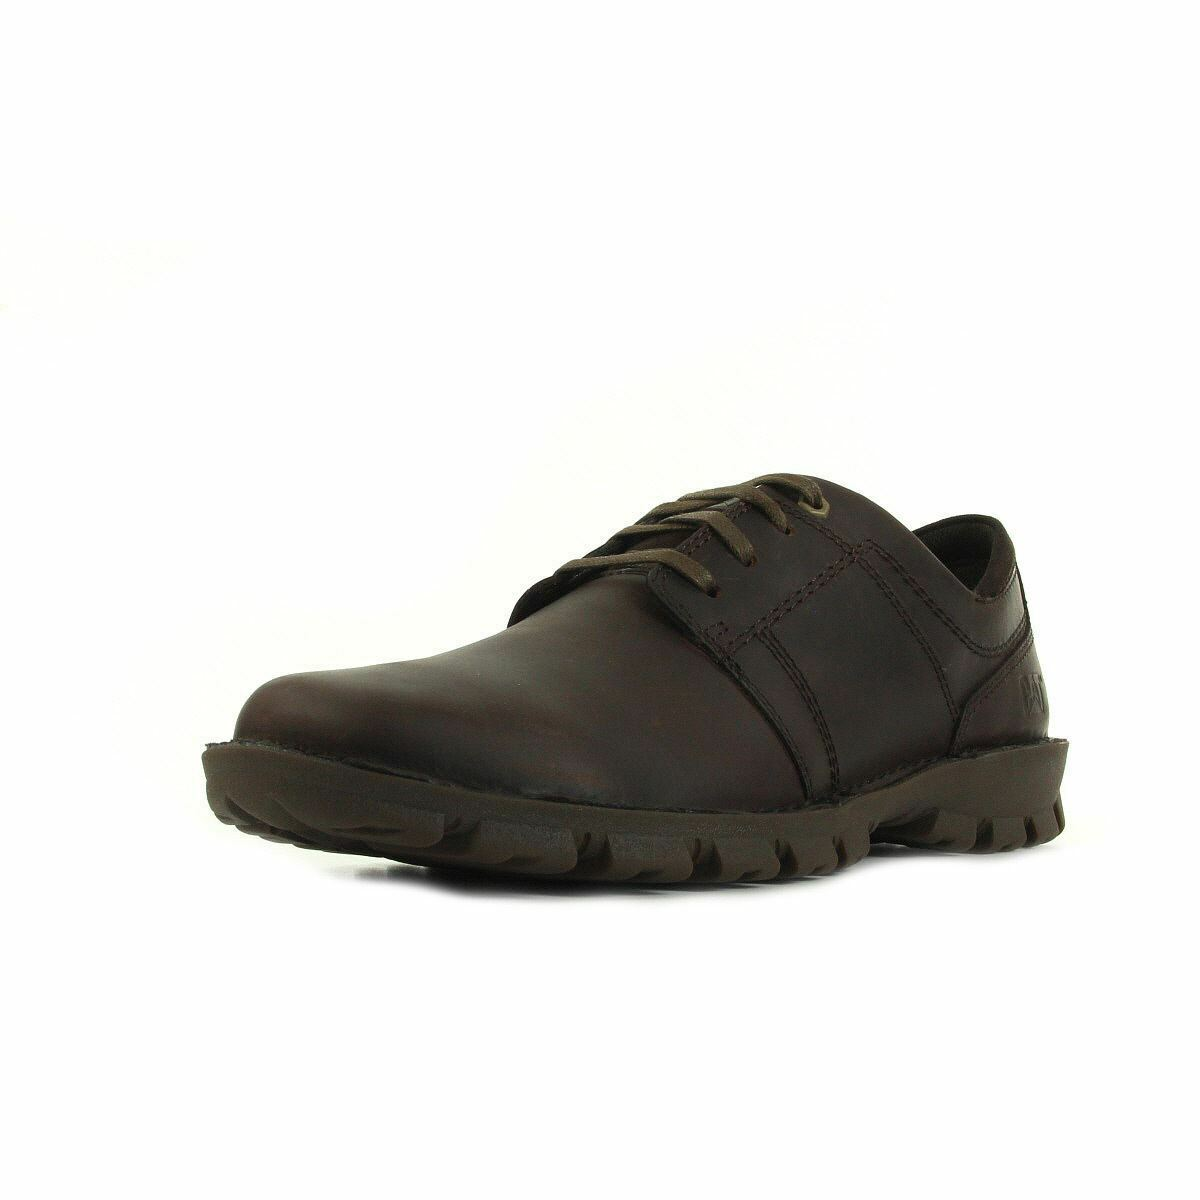 Caterpillar mens Caden Shoe in Dark Brown Sizes 6 to 11 RRP £84.99